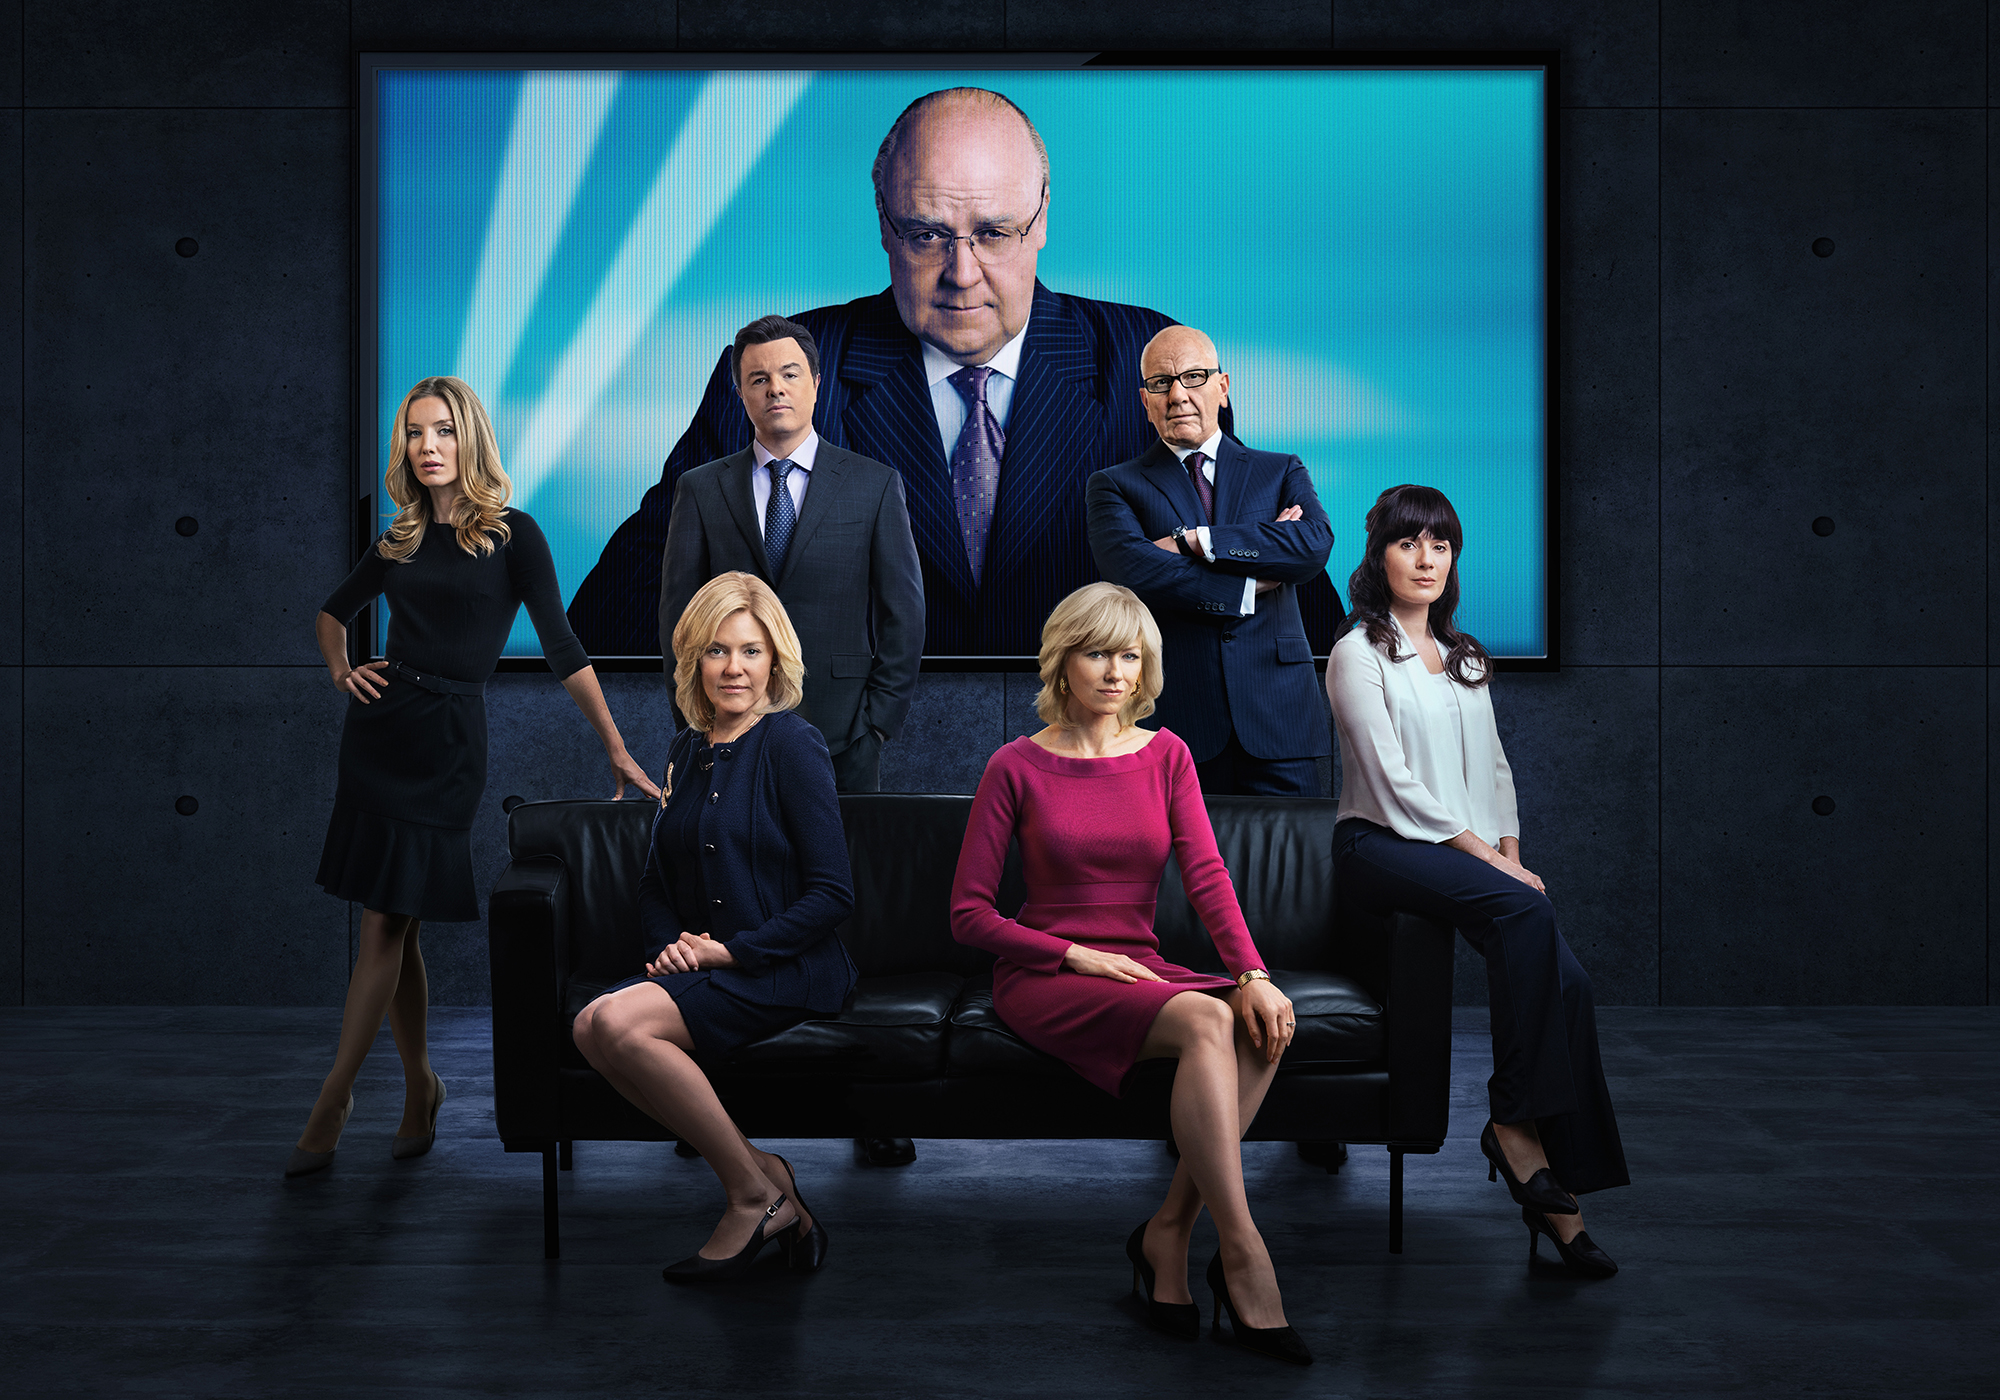 Who-Plays-Who-on-The-Loudest-Voice - (L-R): Annabelle Wallis as Laurie Luhn, Seth MacFarlane as Brian Lewis, Sienna Miller as Elizabeth Ailes, Russell Crowe as Roger Ailes, Naomi Watts as Gretchen Carlson, Simon McBurney as Rupert Murdoch and Aleksa Palladino as Judy Laterza in THE LOUDEST VOICE.